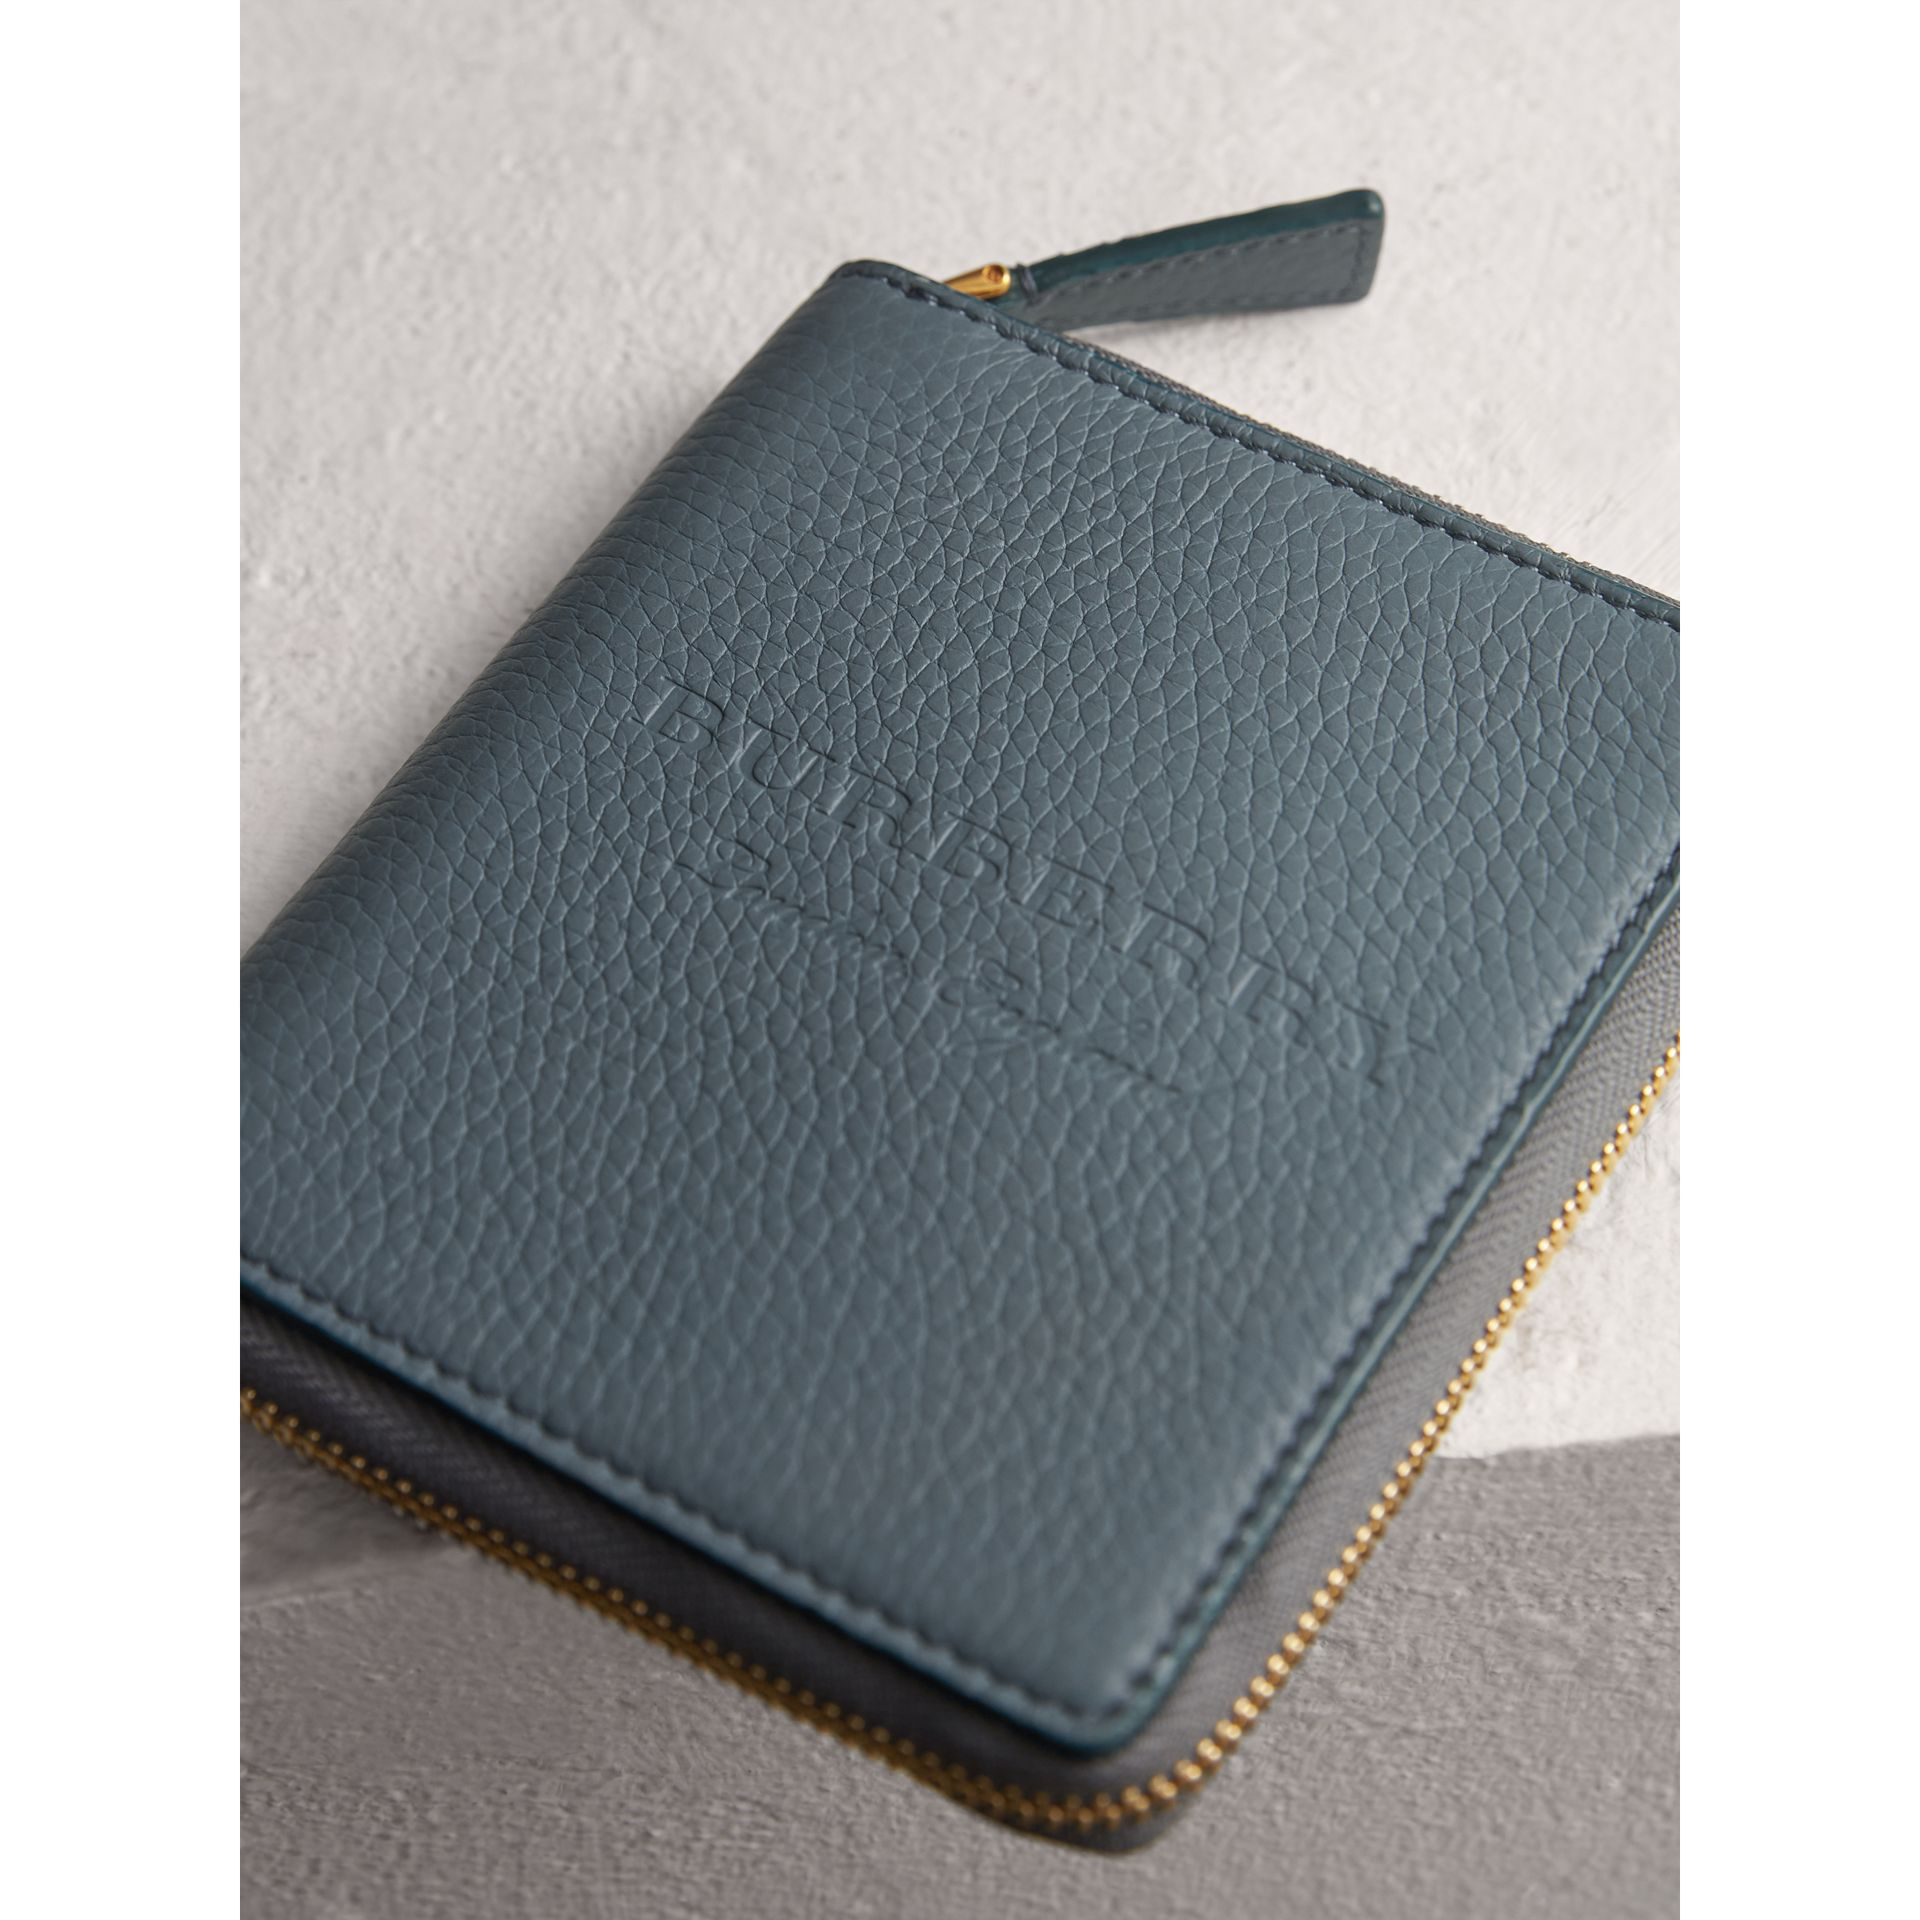 Embossed Grainy Leather Ziparound A6 Notebook Case in Dusty Teal Blue | Burberry United Kingdom - gallery image 1